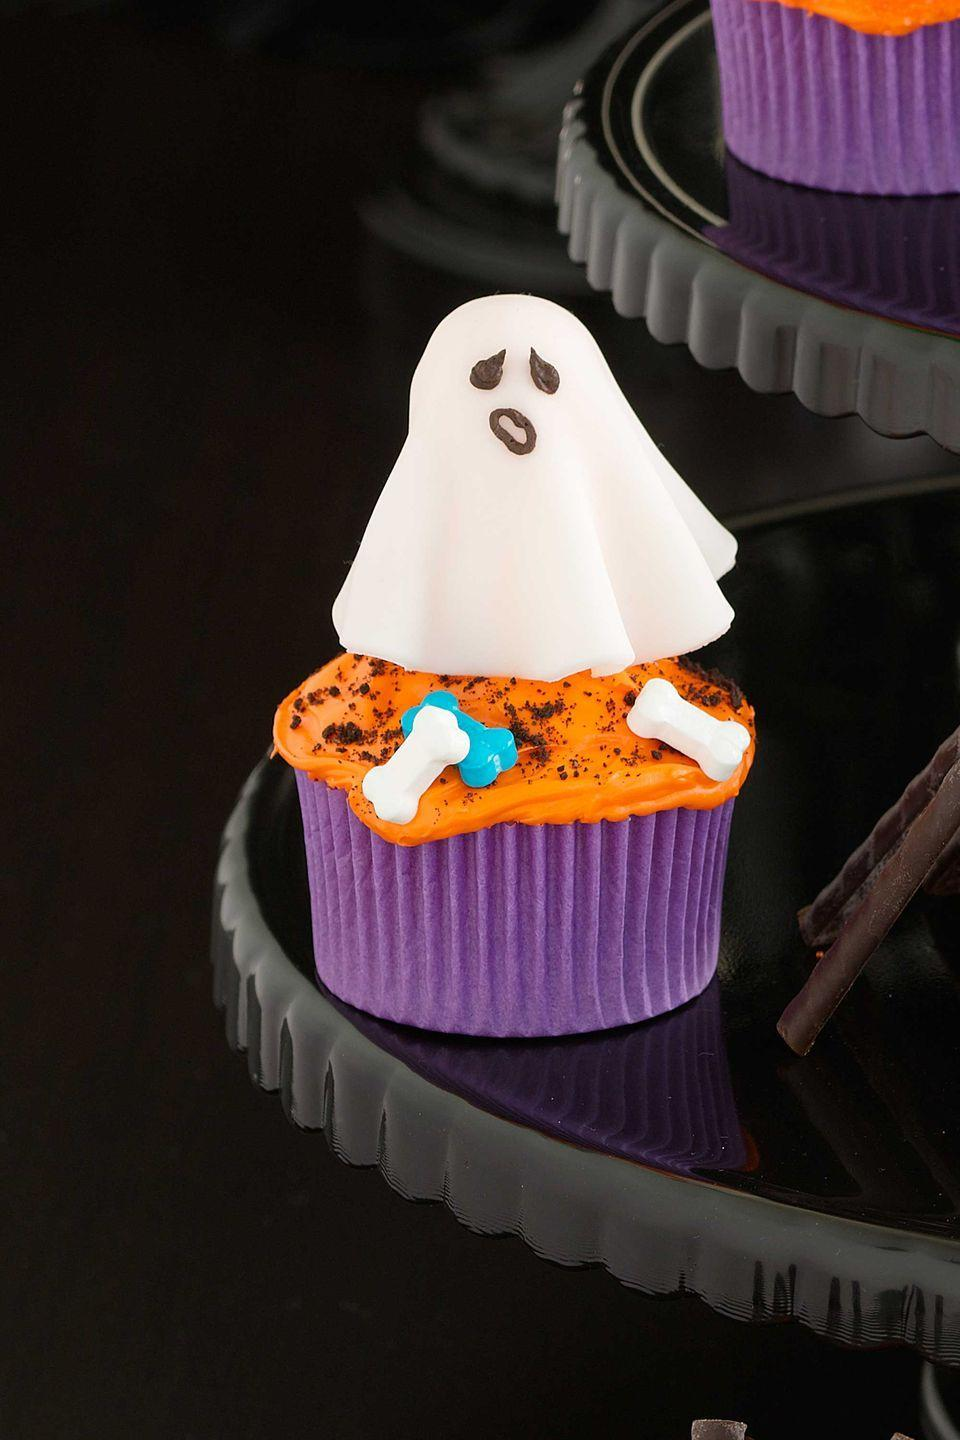 """<p>This friendly ghost is simple to make and easier to enjoy! The fondant ghost is draped over a circus peanut candy, and floats over an orange cupcake with crushed cookies and bone-shaped candies.</p><p><a href=""""https://www.womansday.com/food-recipes/food-drinks/recipes/a10762/ghost-cupcakes-122191/"""" rel=""""nofollow noopener"""" target=""""_blank"""" data-ylk=""""slk:Get the Ghost Cupcakes recipe."""" class=""""link rapid-noclick-resp""""><em>Get the Ghost Cupcakes recipe.</em></a></p>"""